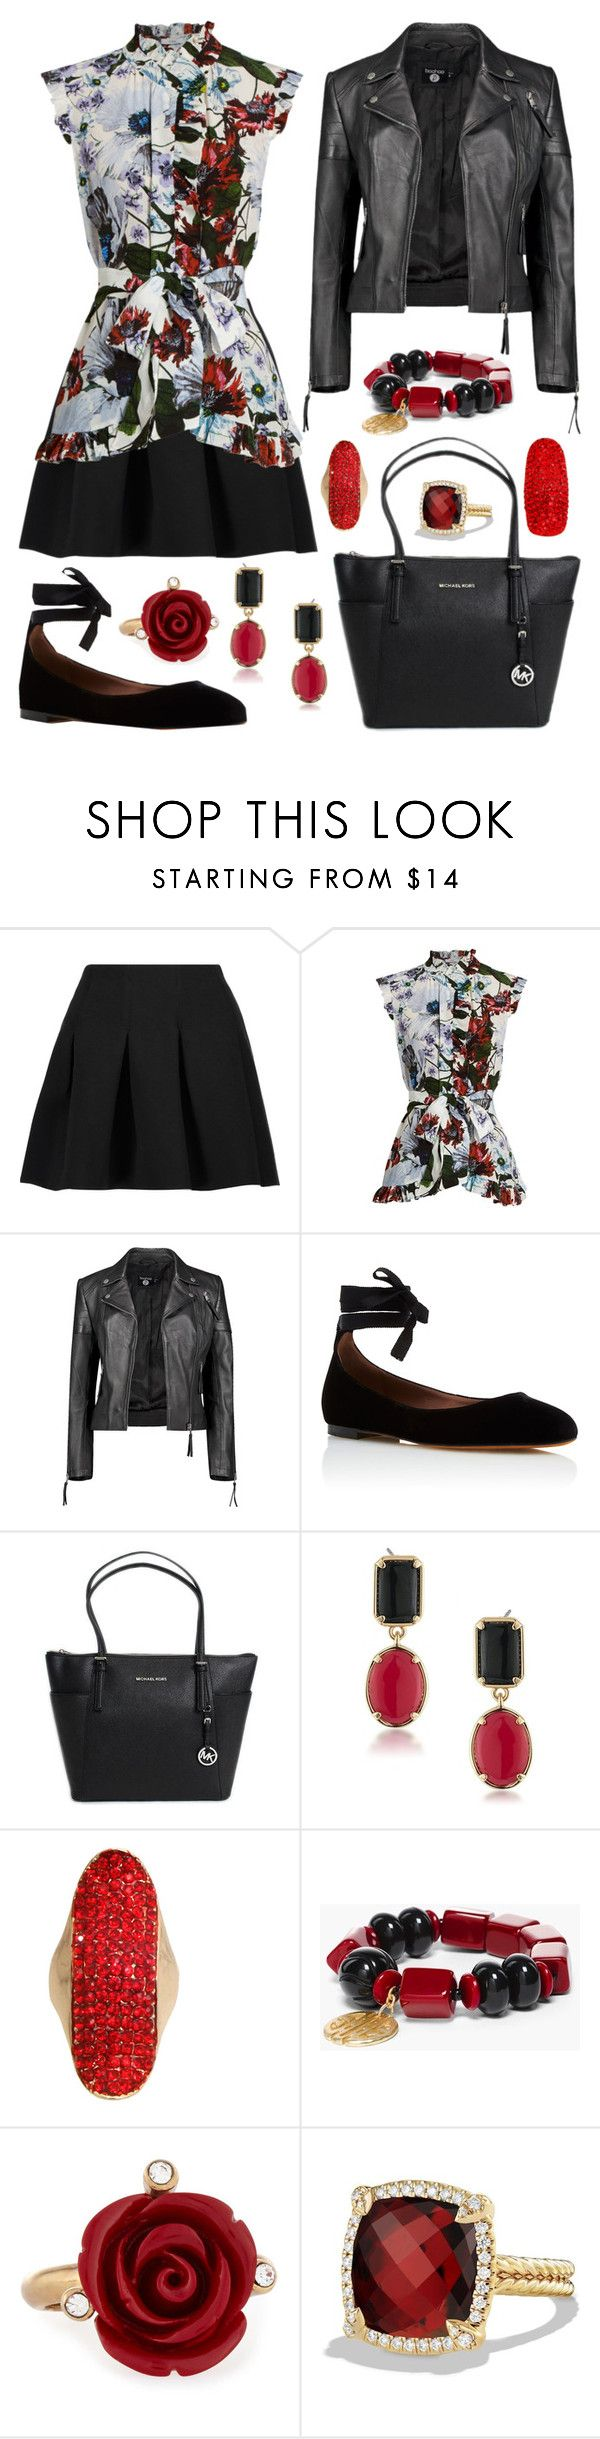 """""""So Confused with My Life"""" by staysaneinsideinsanity ❤ liked on Polyvore featuring T By Alexander Wang, Erdem, Boohoo, Tabitha Simmons, 1st & Gorgeous by Carolee, Chico's, Oscar de la Renta and David Yurman"""